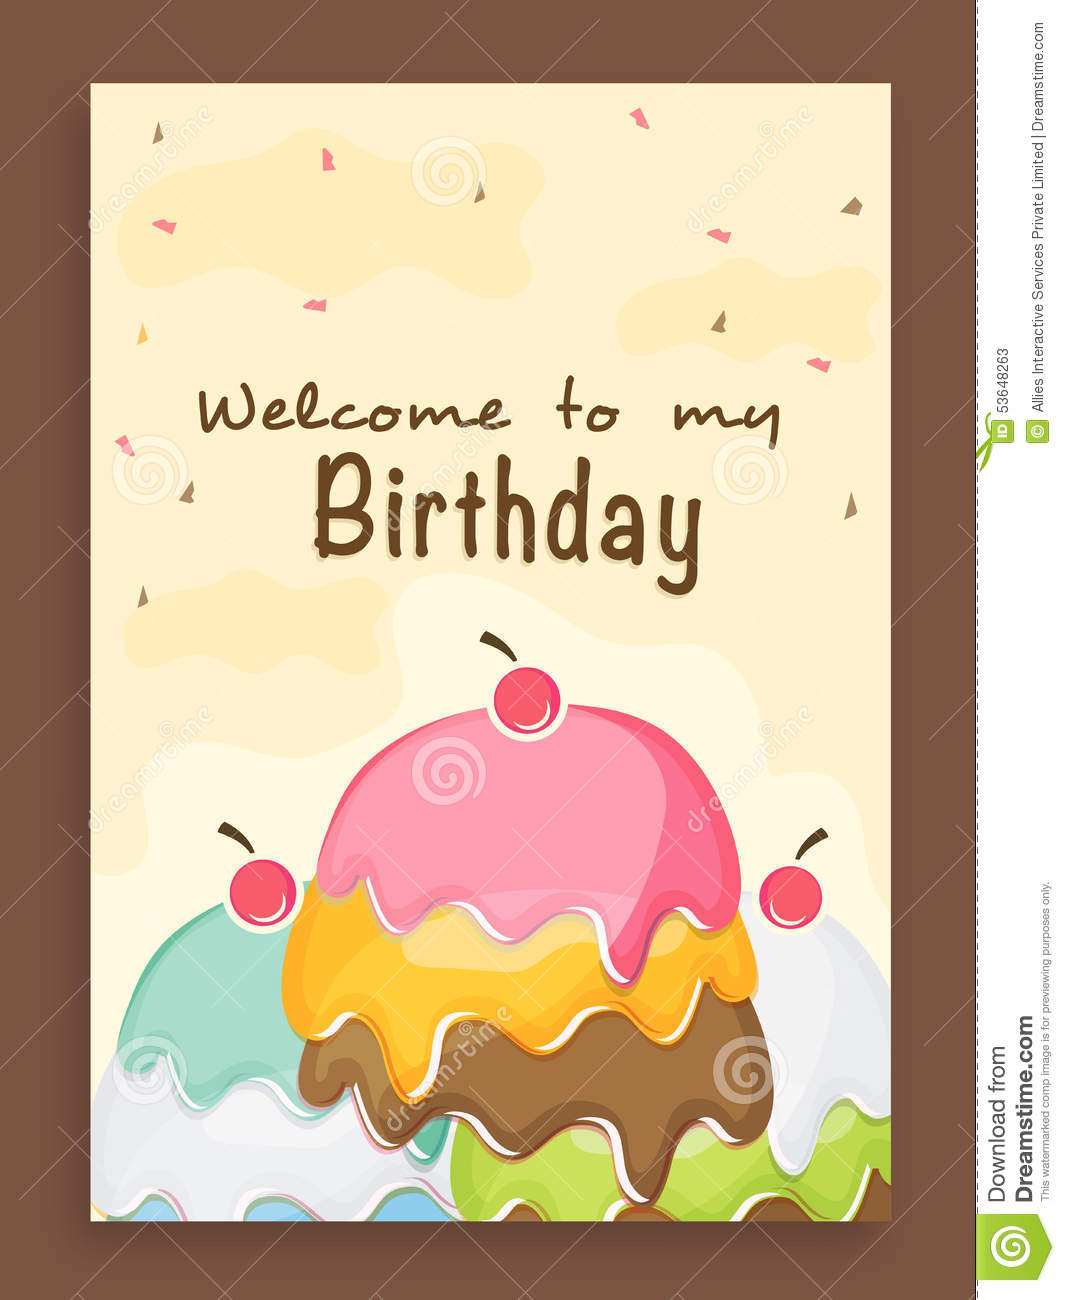 Birthday party invitations cards leoncapers birthday party invitations cards stopboris Image collections